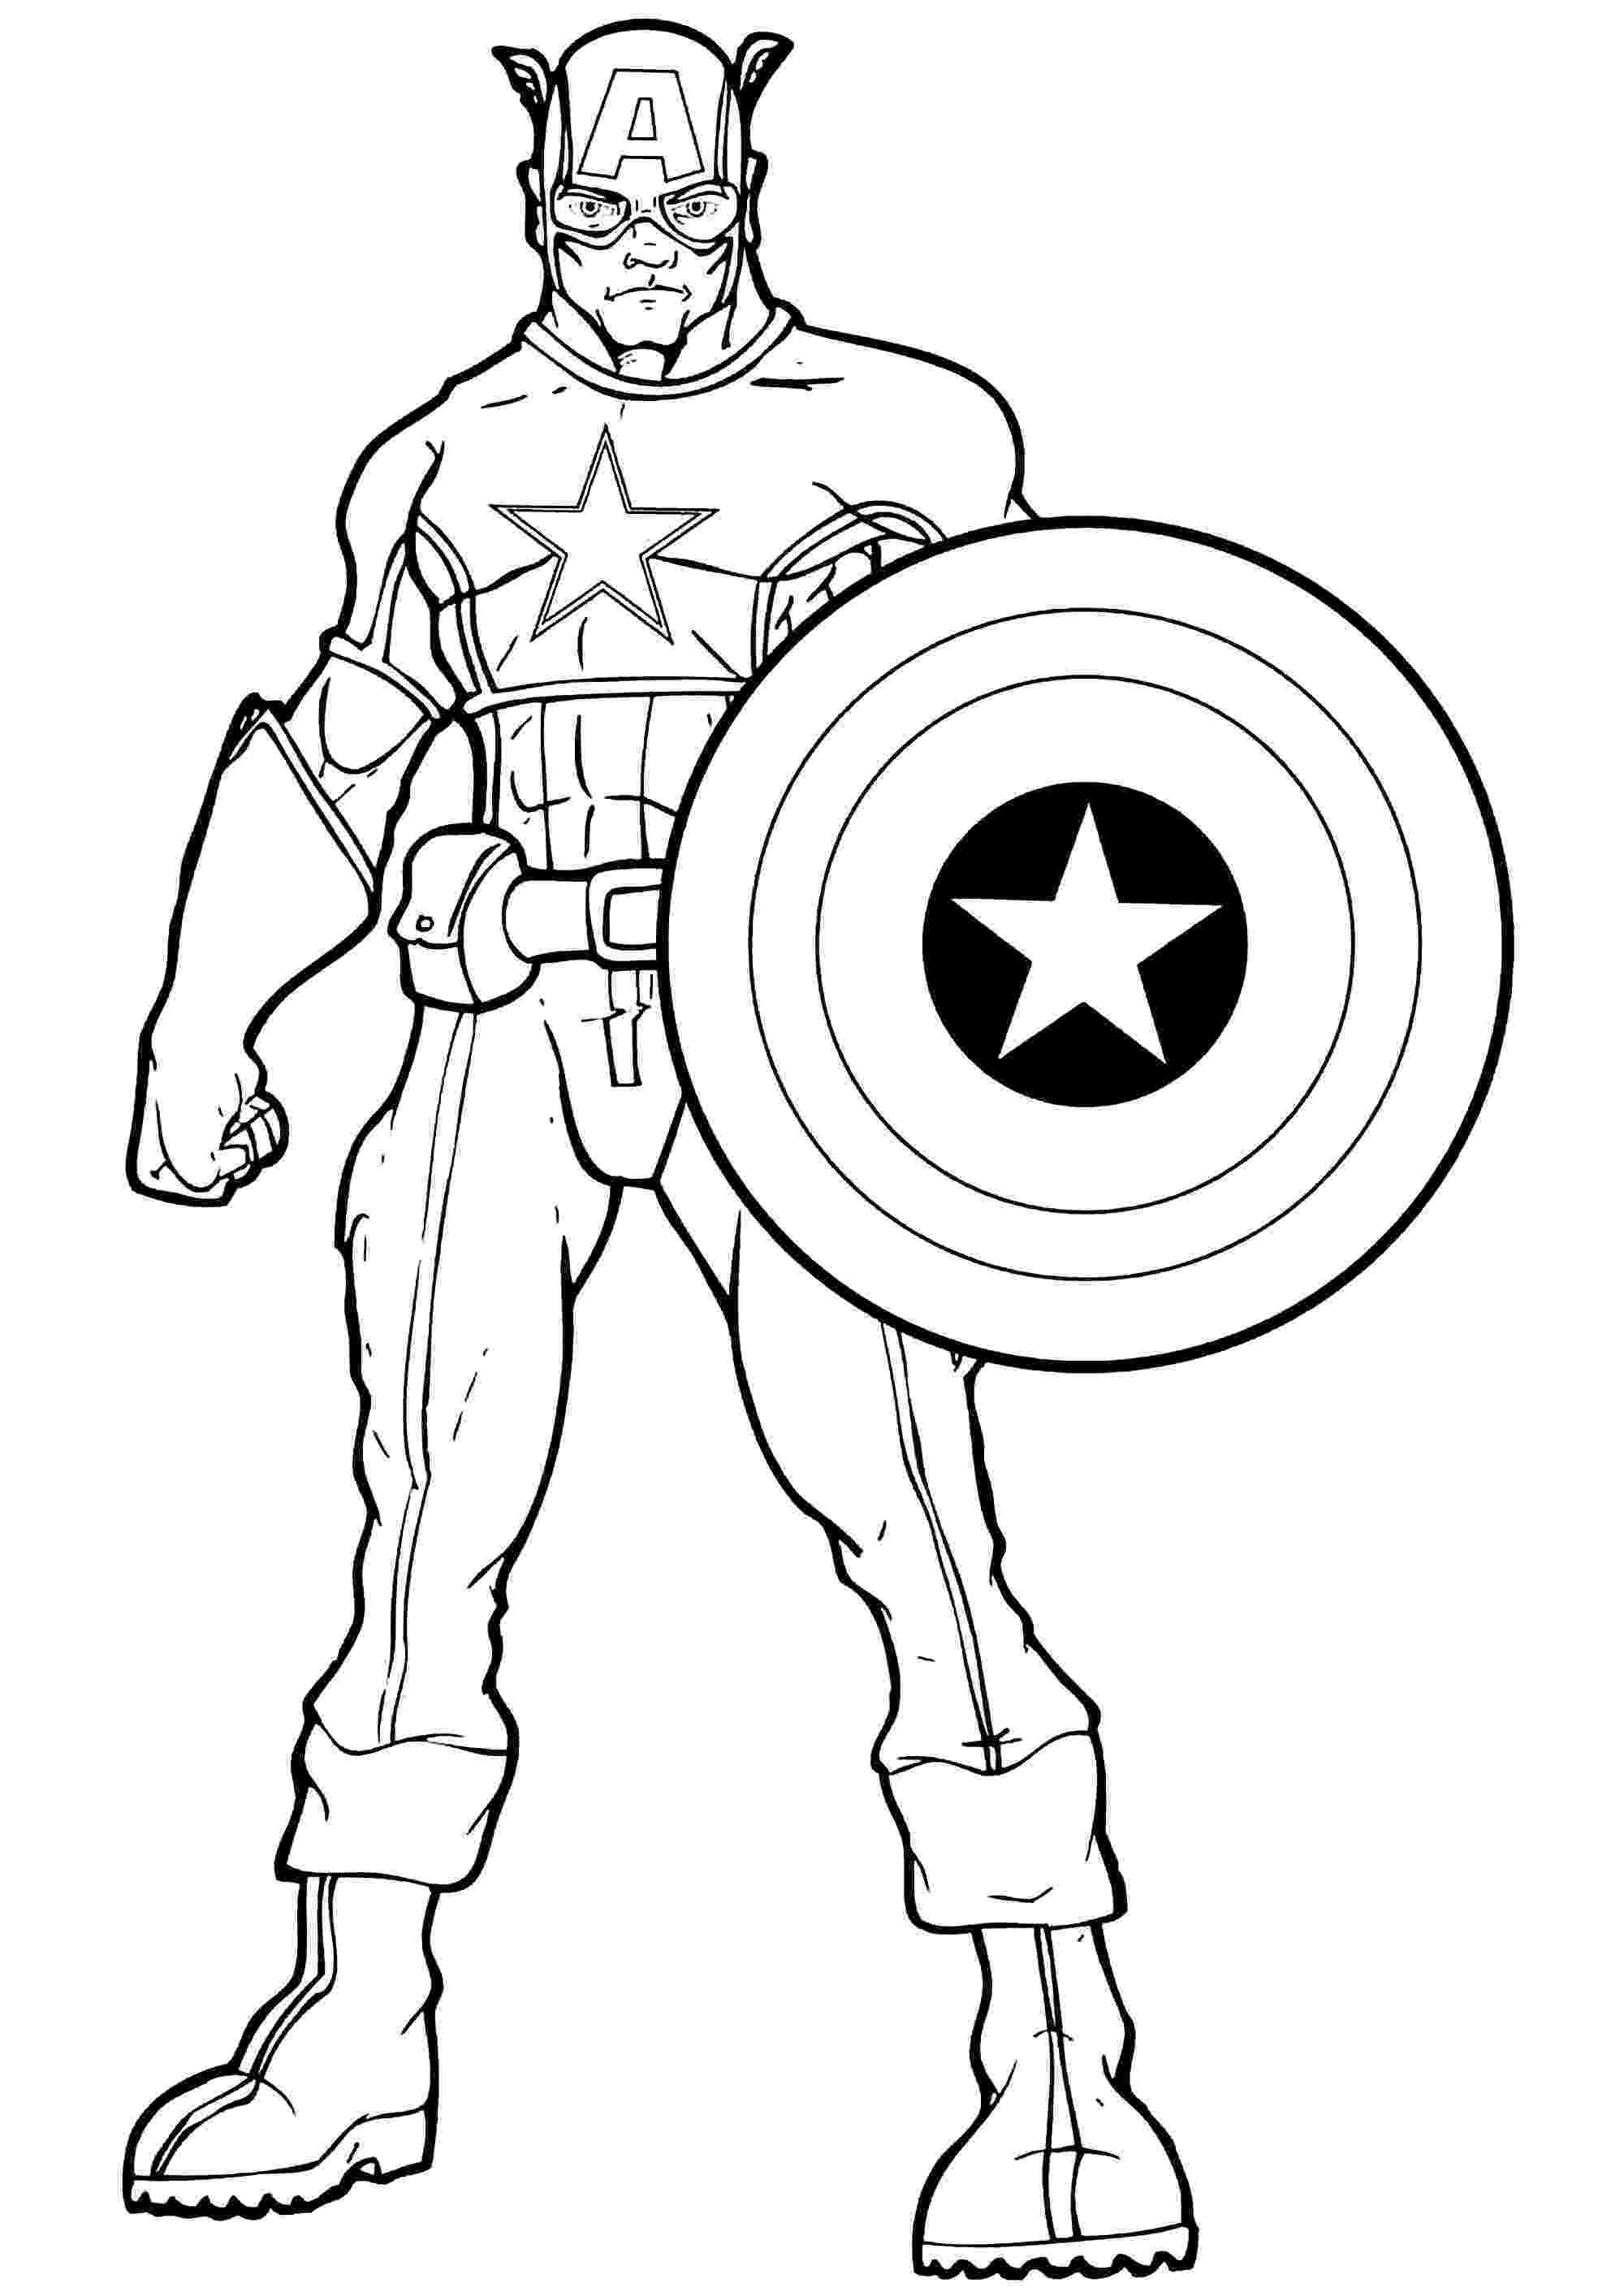 captain america coloring pictures avengers coloring pages best coloring pages for kids captain america coloring pictures